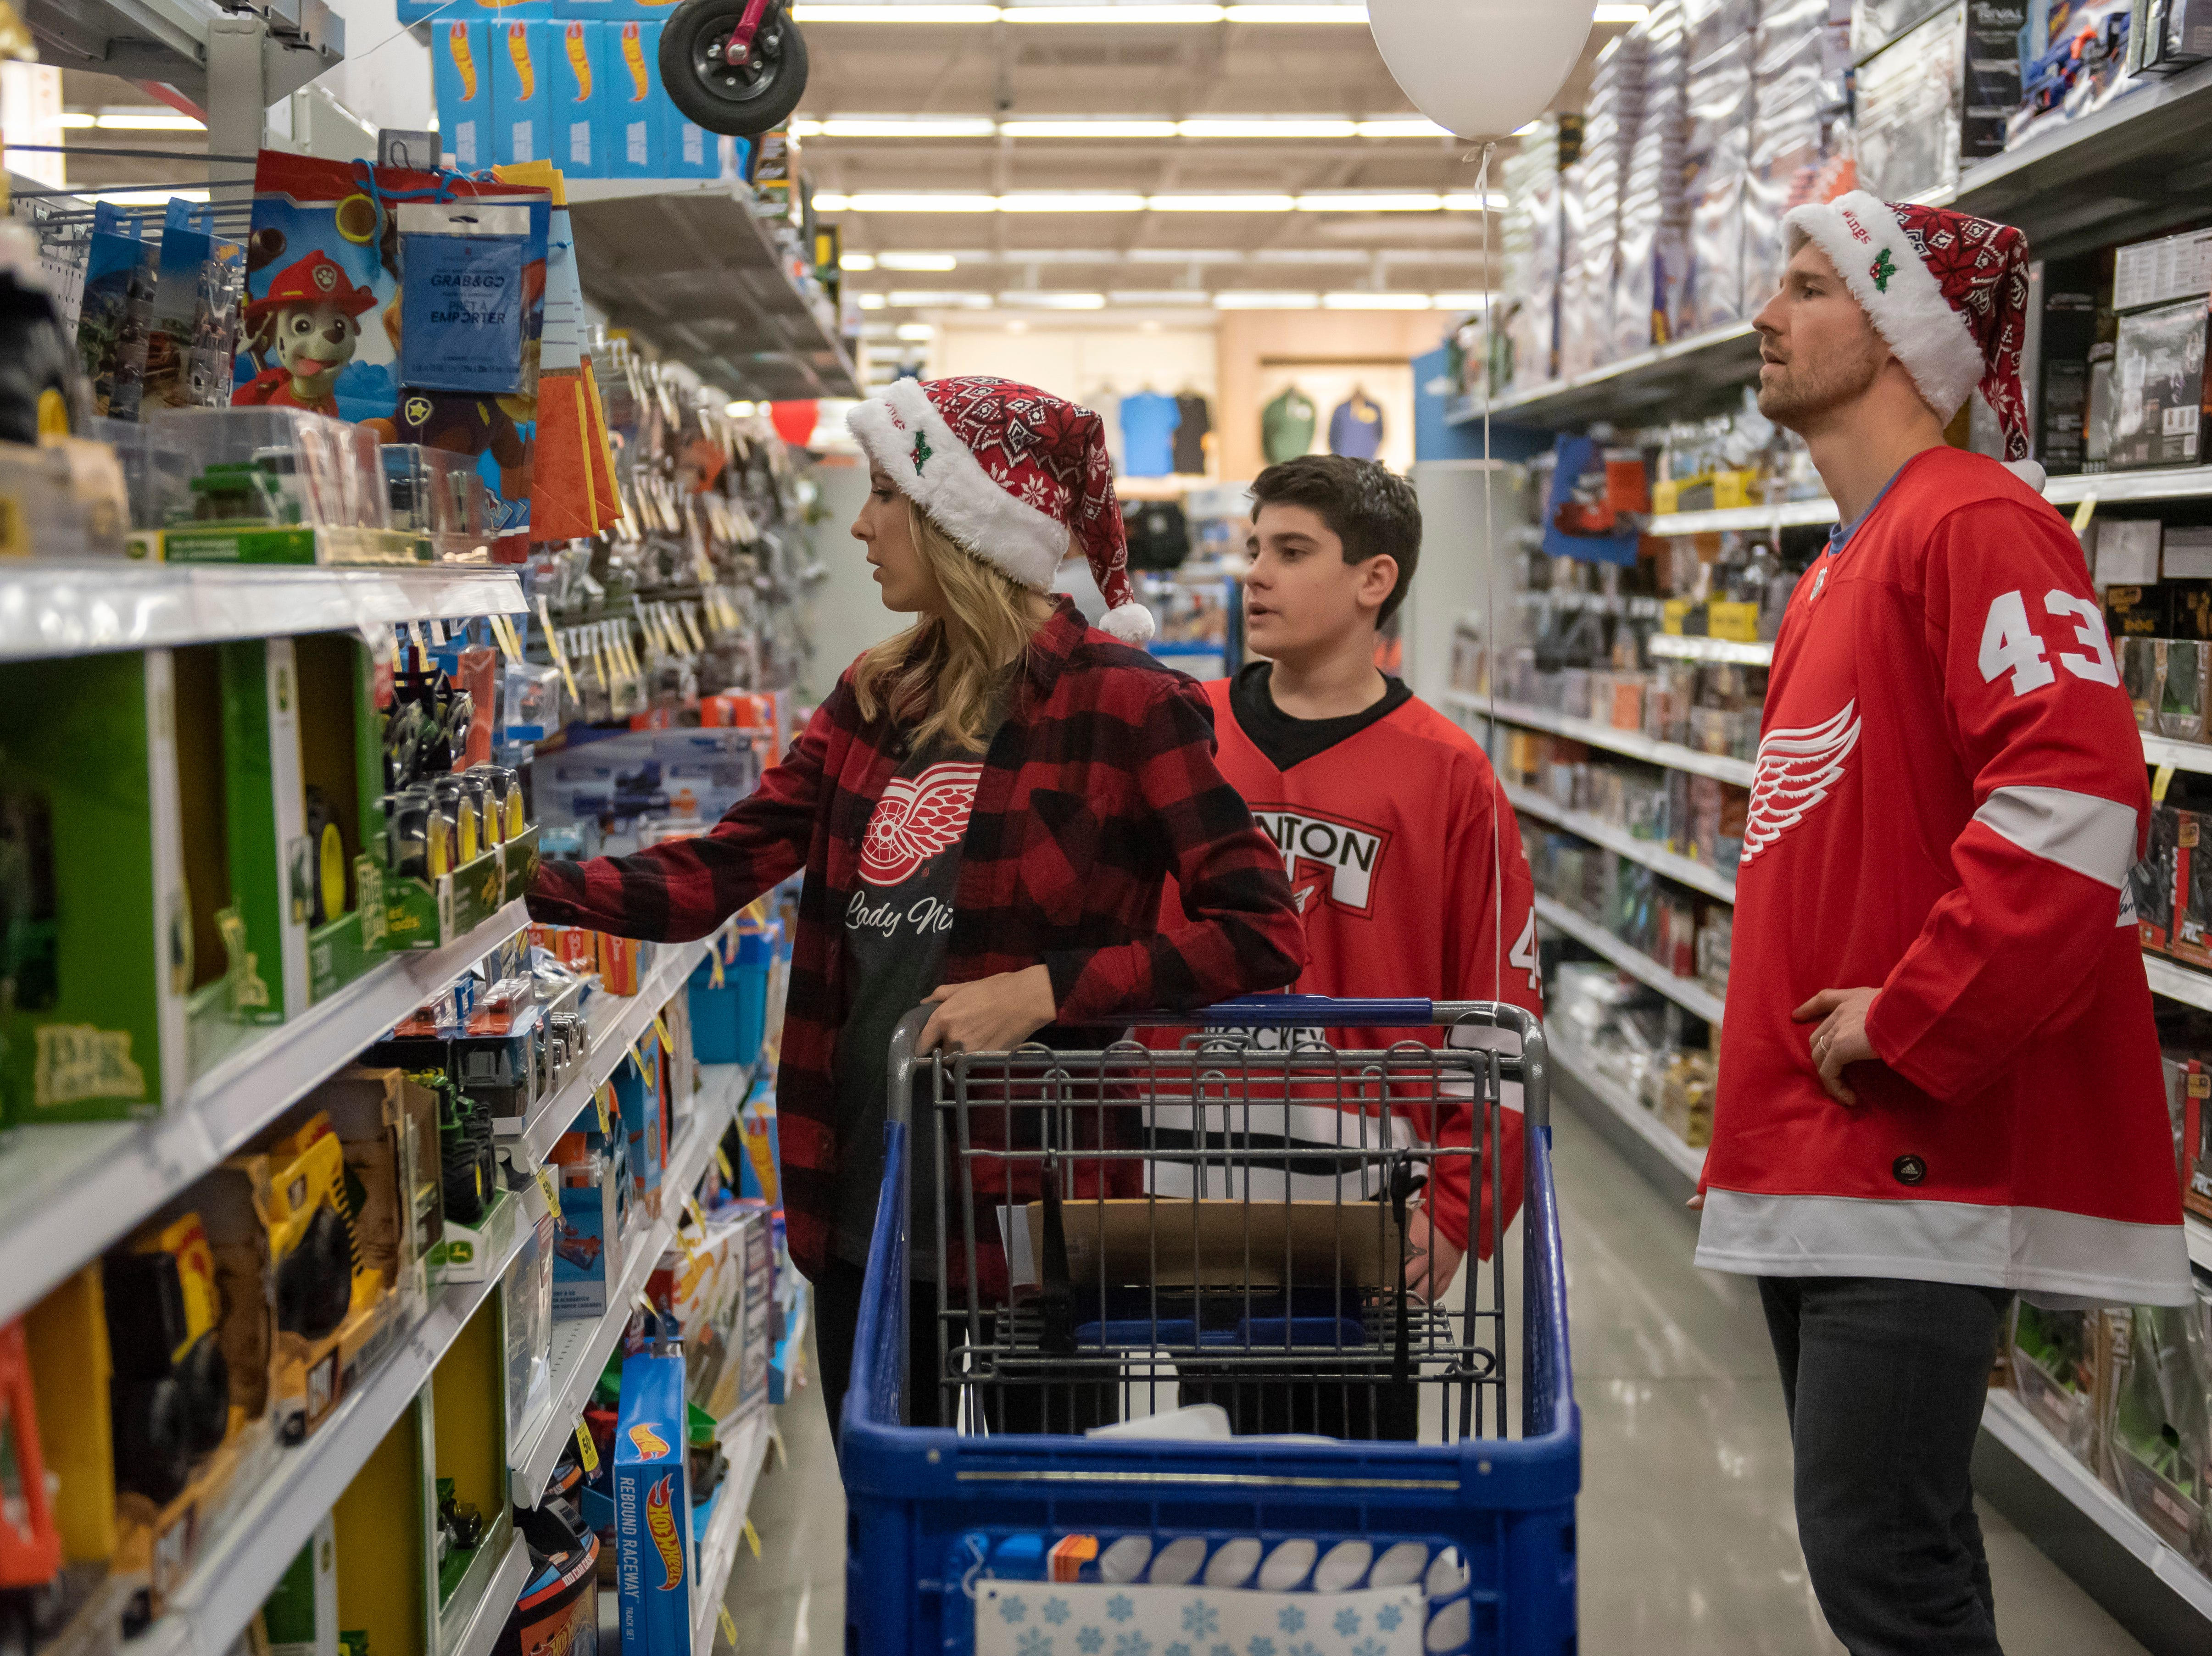 (From left) Devon Helm, thirteen-year-old Connor Giles, and Red Wings forward Darren Helm wander the aisles at Meijer.